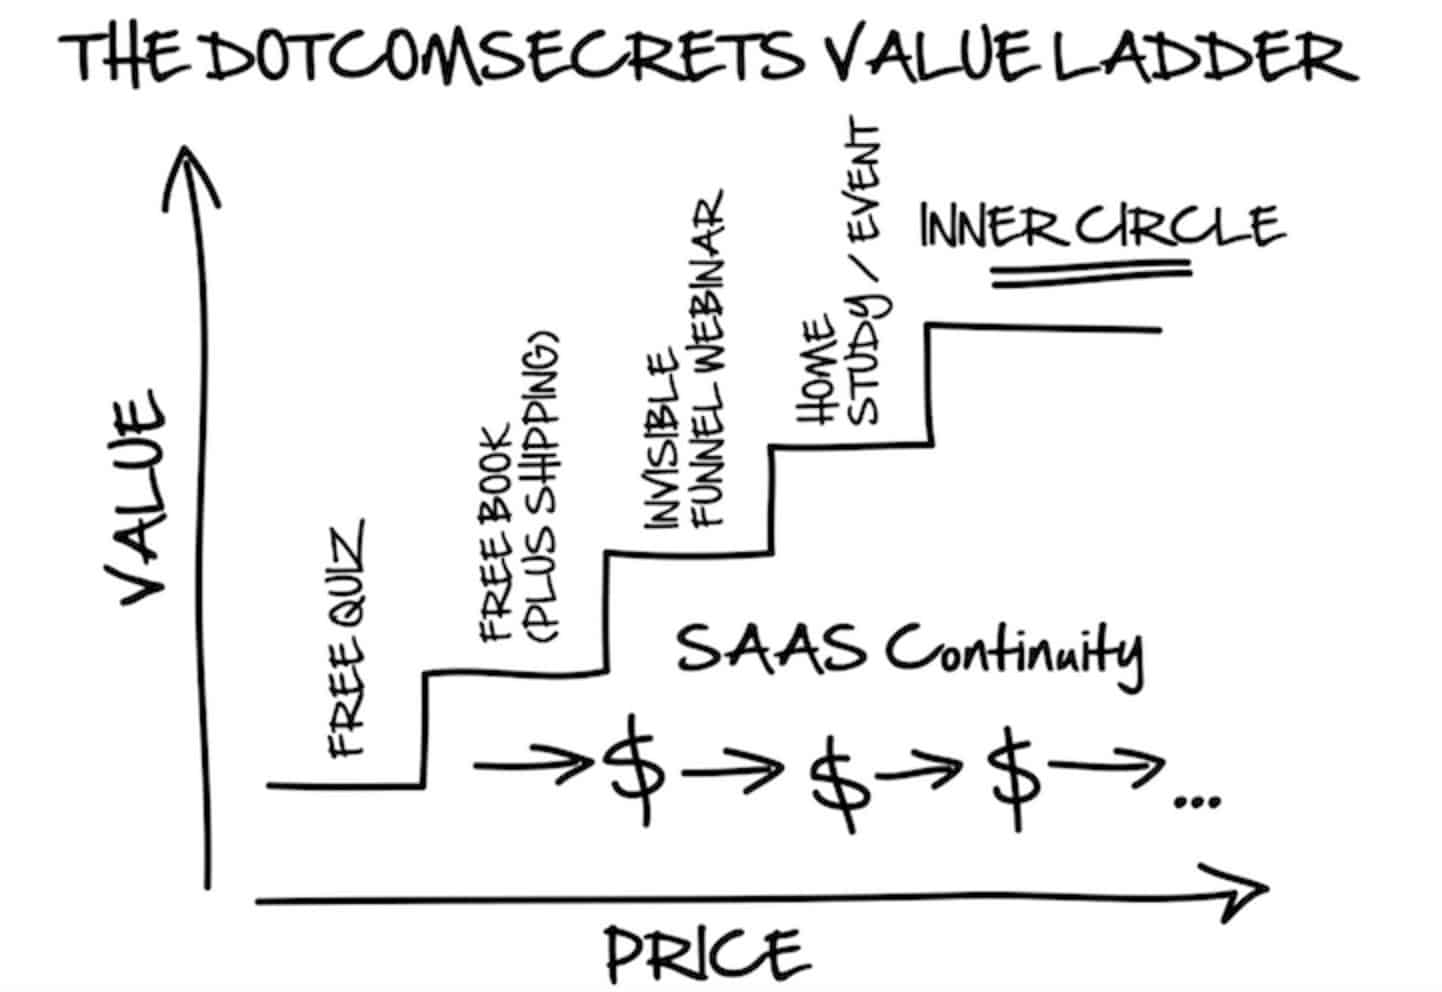 SAAS Value Ladder by Russell Brunson